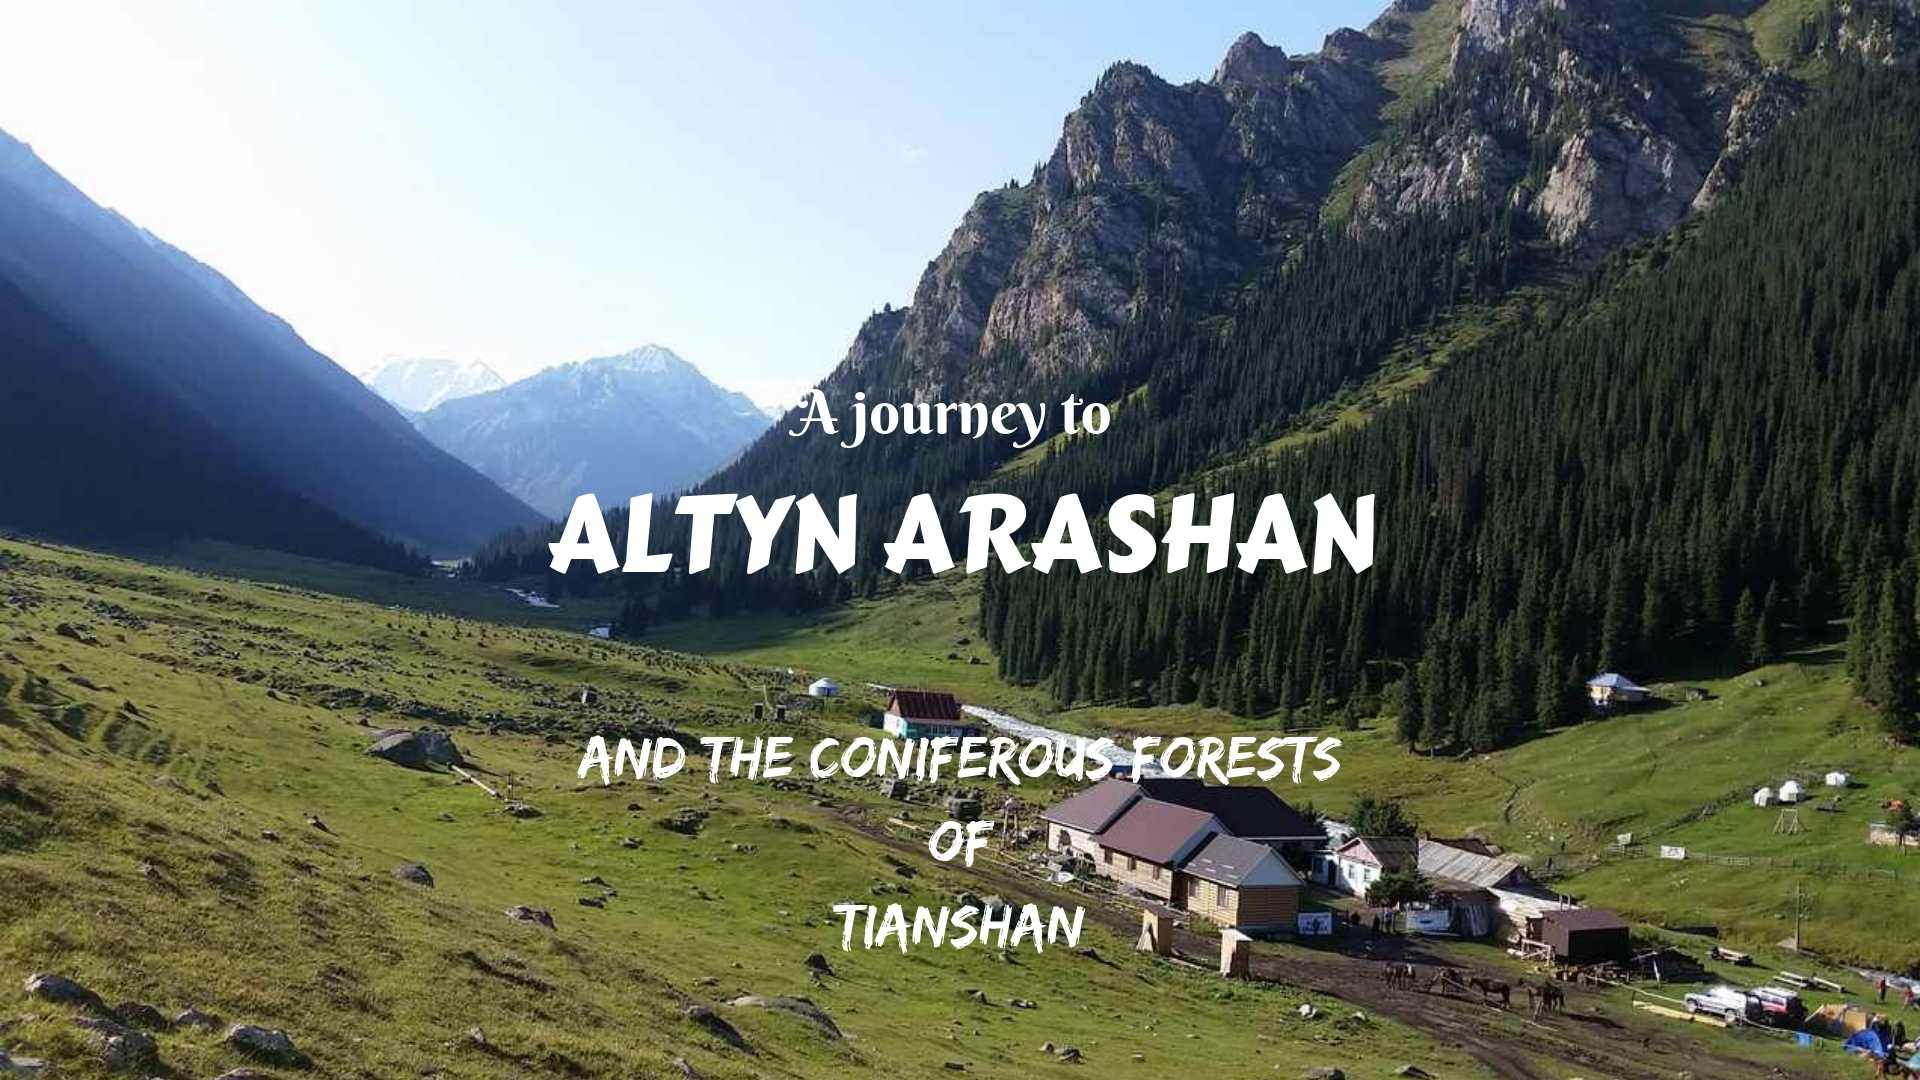 A JOURNEY TO ALTYN ARASHAN AND THE CONIFEROUS FORESTS OF TIANSHAN